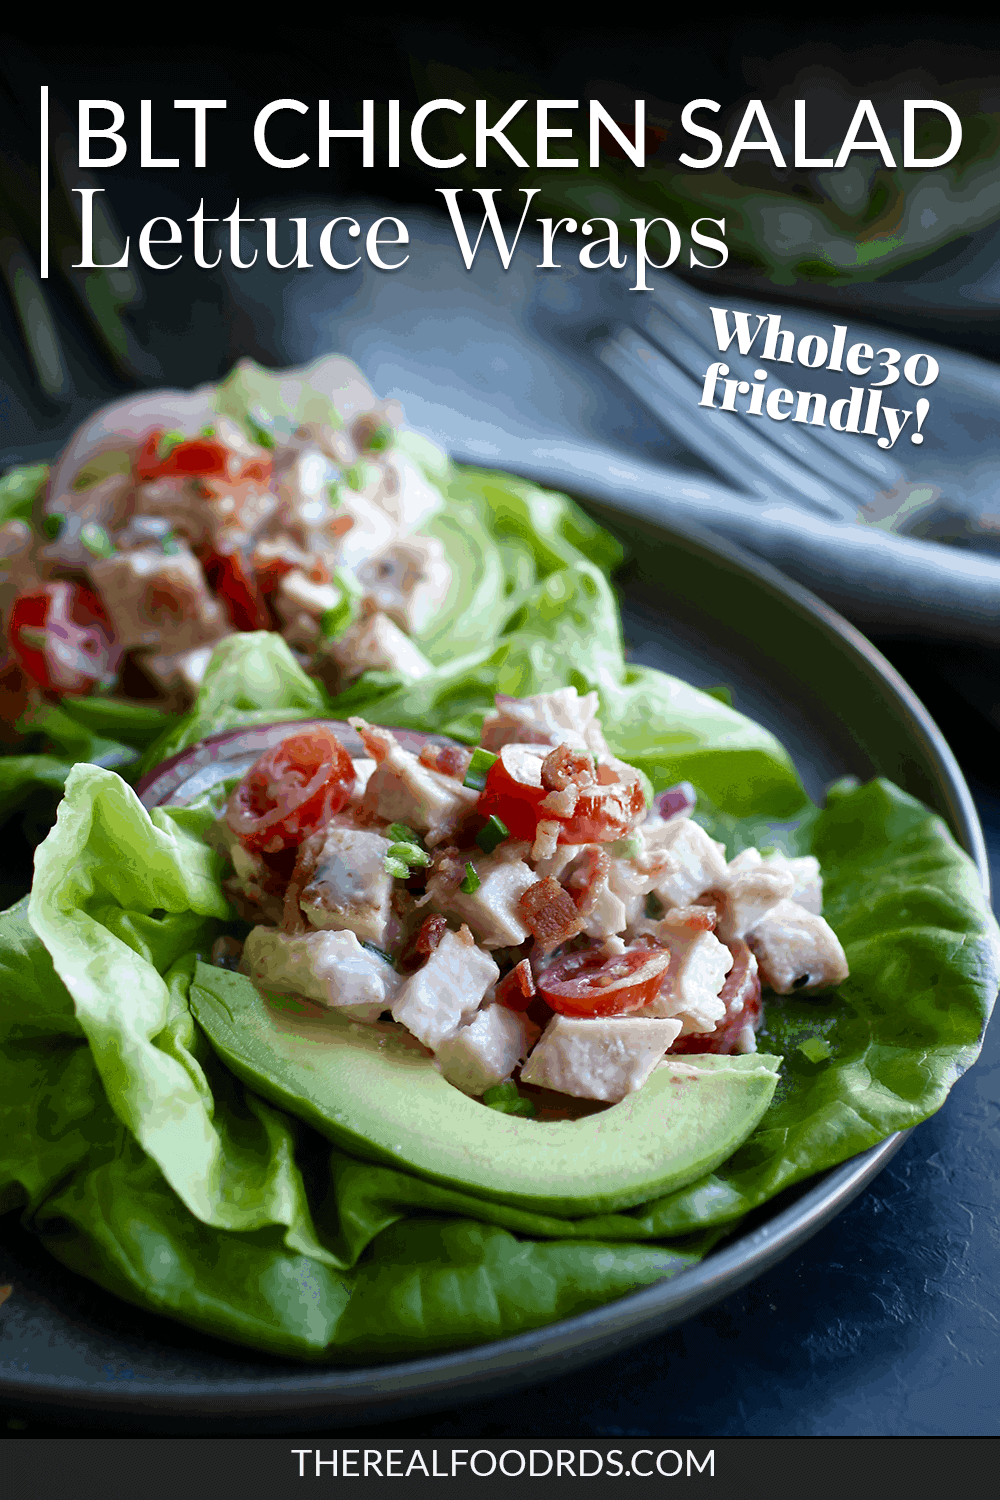 Pin image for BLT Chicken Salad Lettuce Wraps